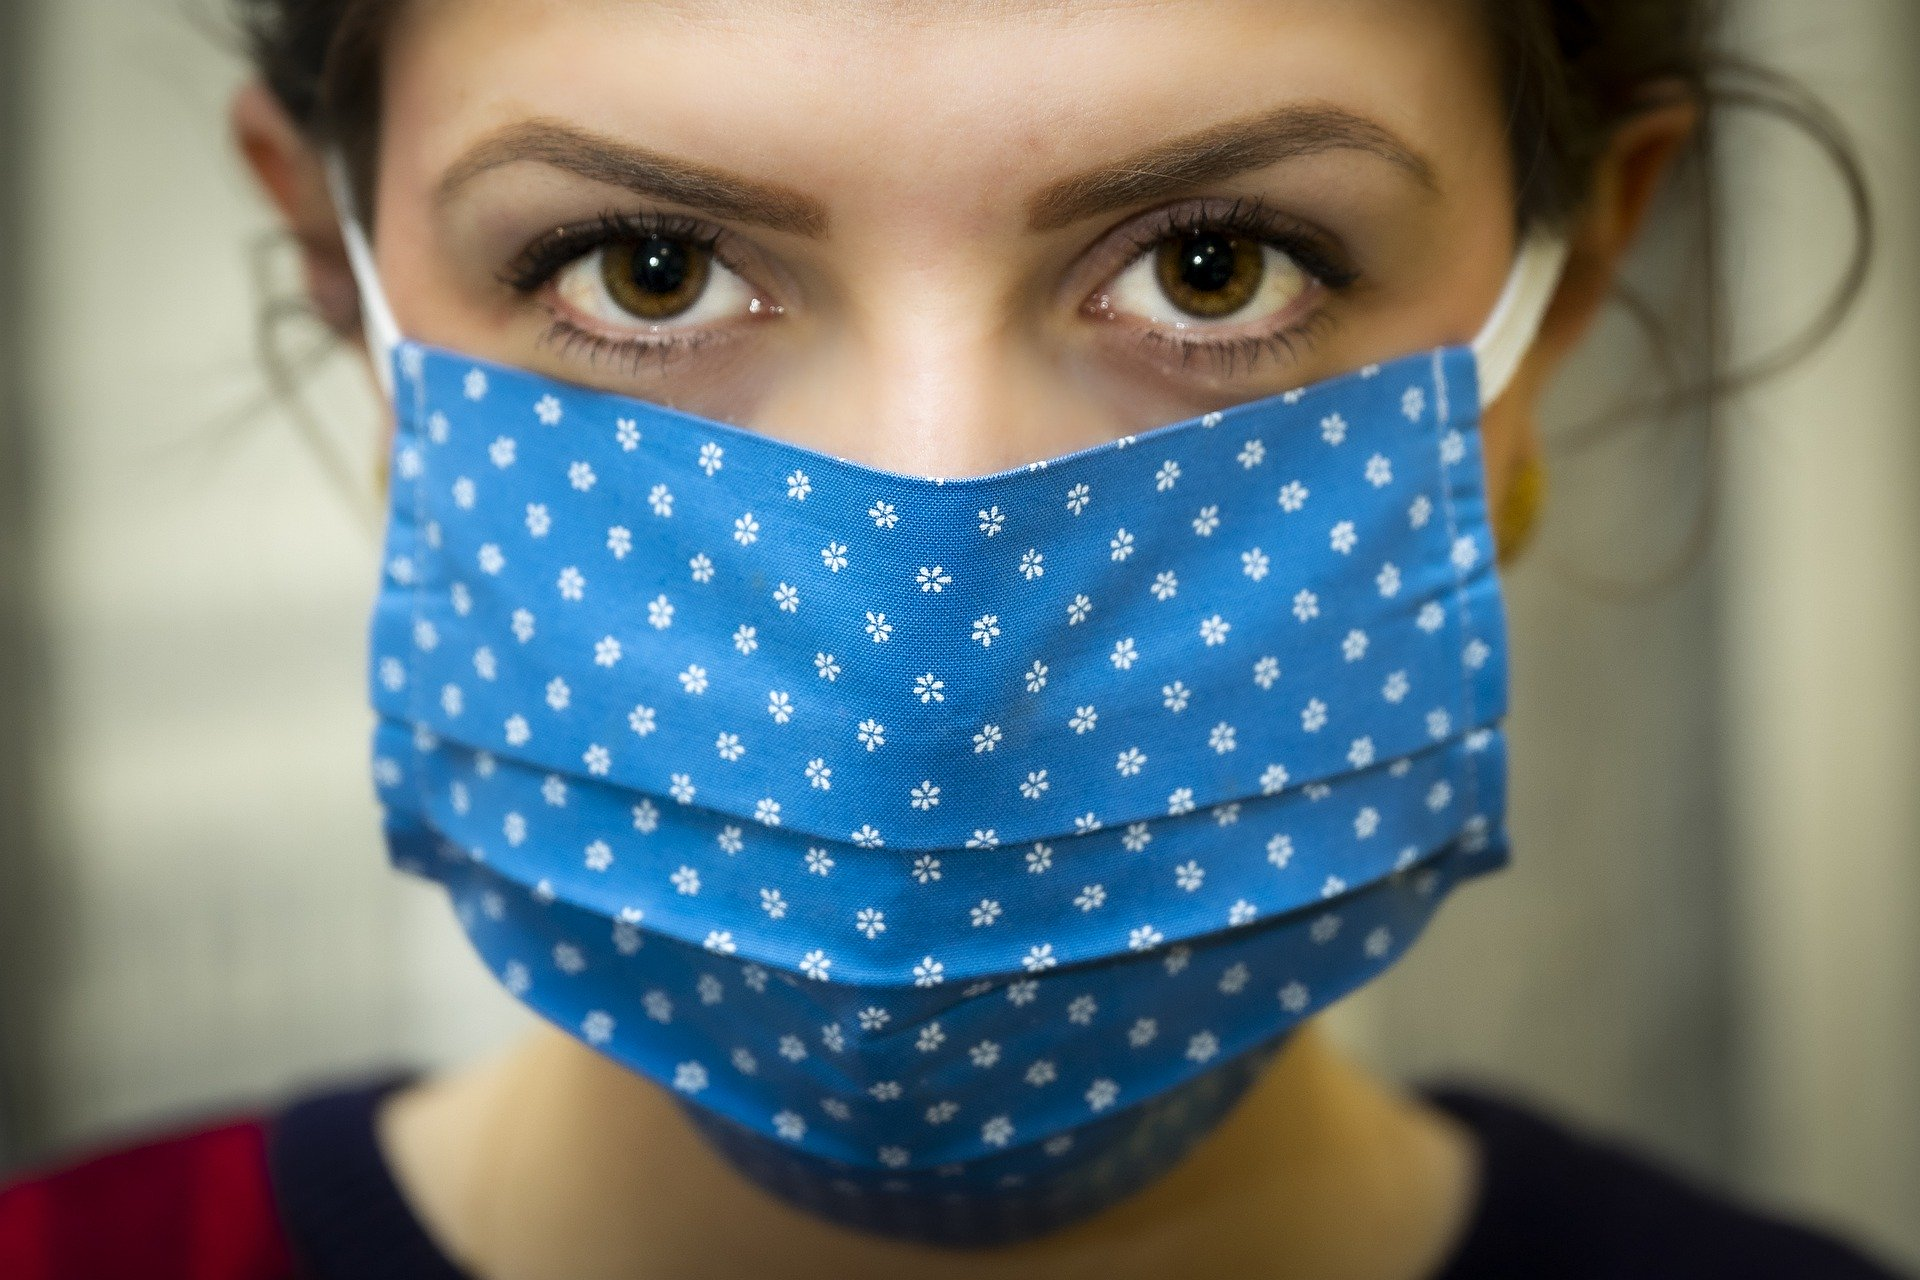 Brown eyed woman facing camera wearing a navy blue with white spotted mask